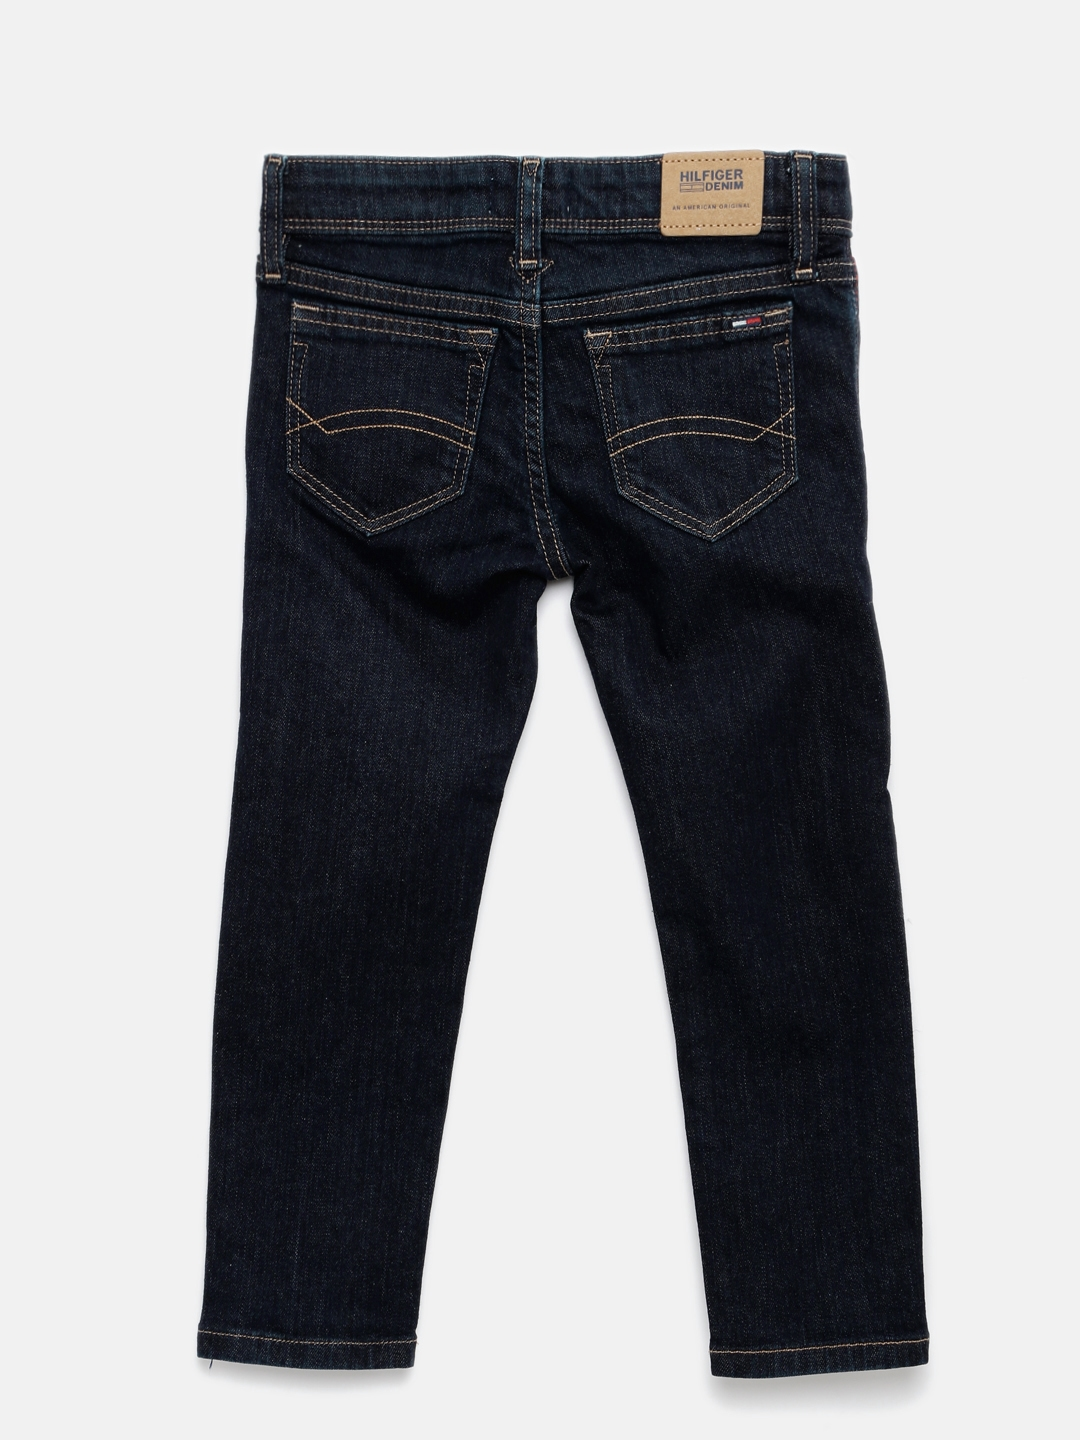 378fb014 Buy Tommy Hilfiger Boys Blue Slim Fit Mid Rise Clean Look Jeans ...